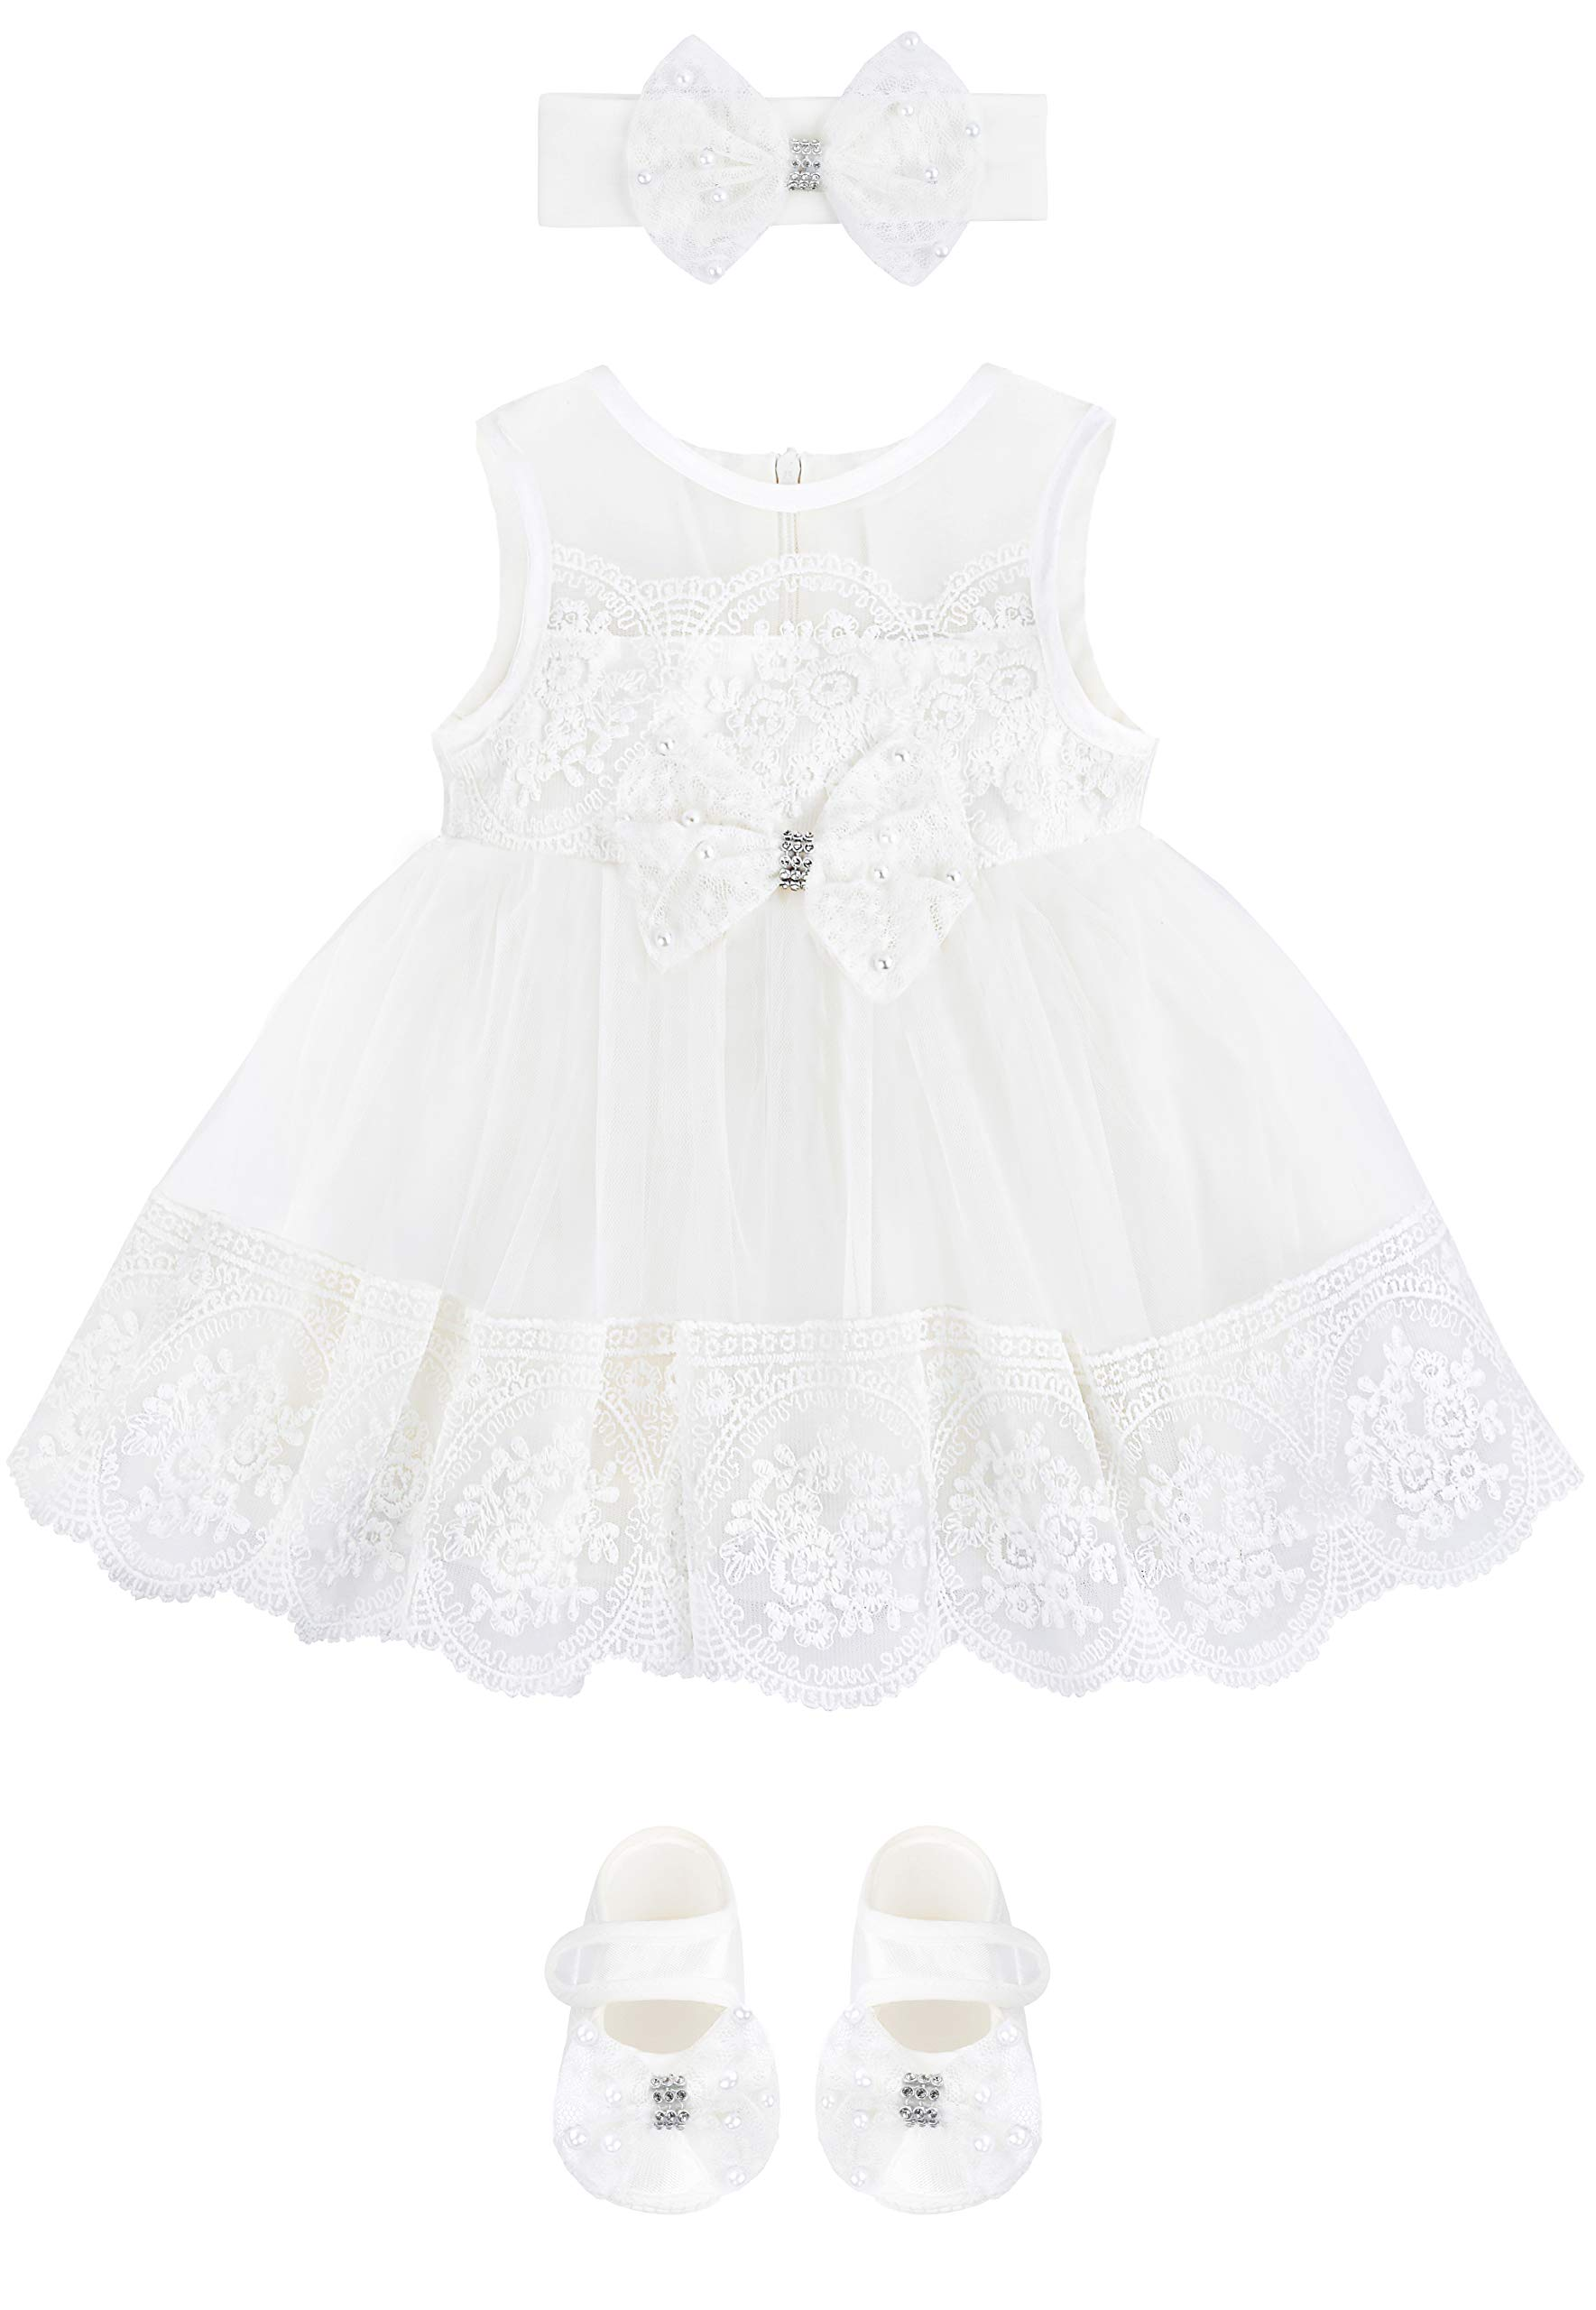 Taffy Baby Girl Christening Baptism Embroidered Dress Gown 6 Piece Deluxe Set 0-3 Months, White by T.F. Taffy